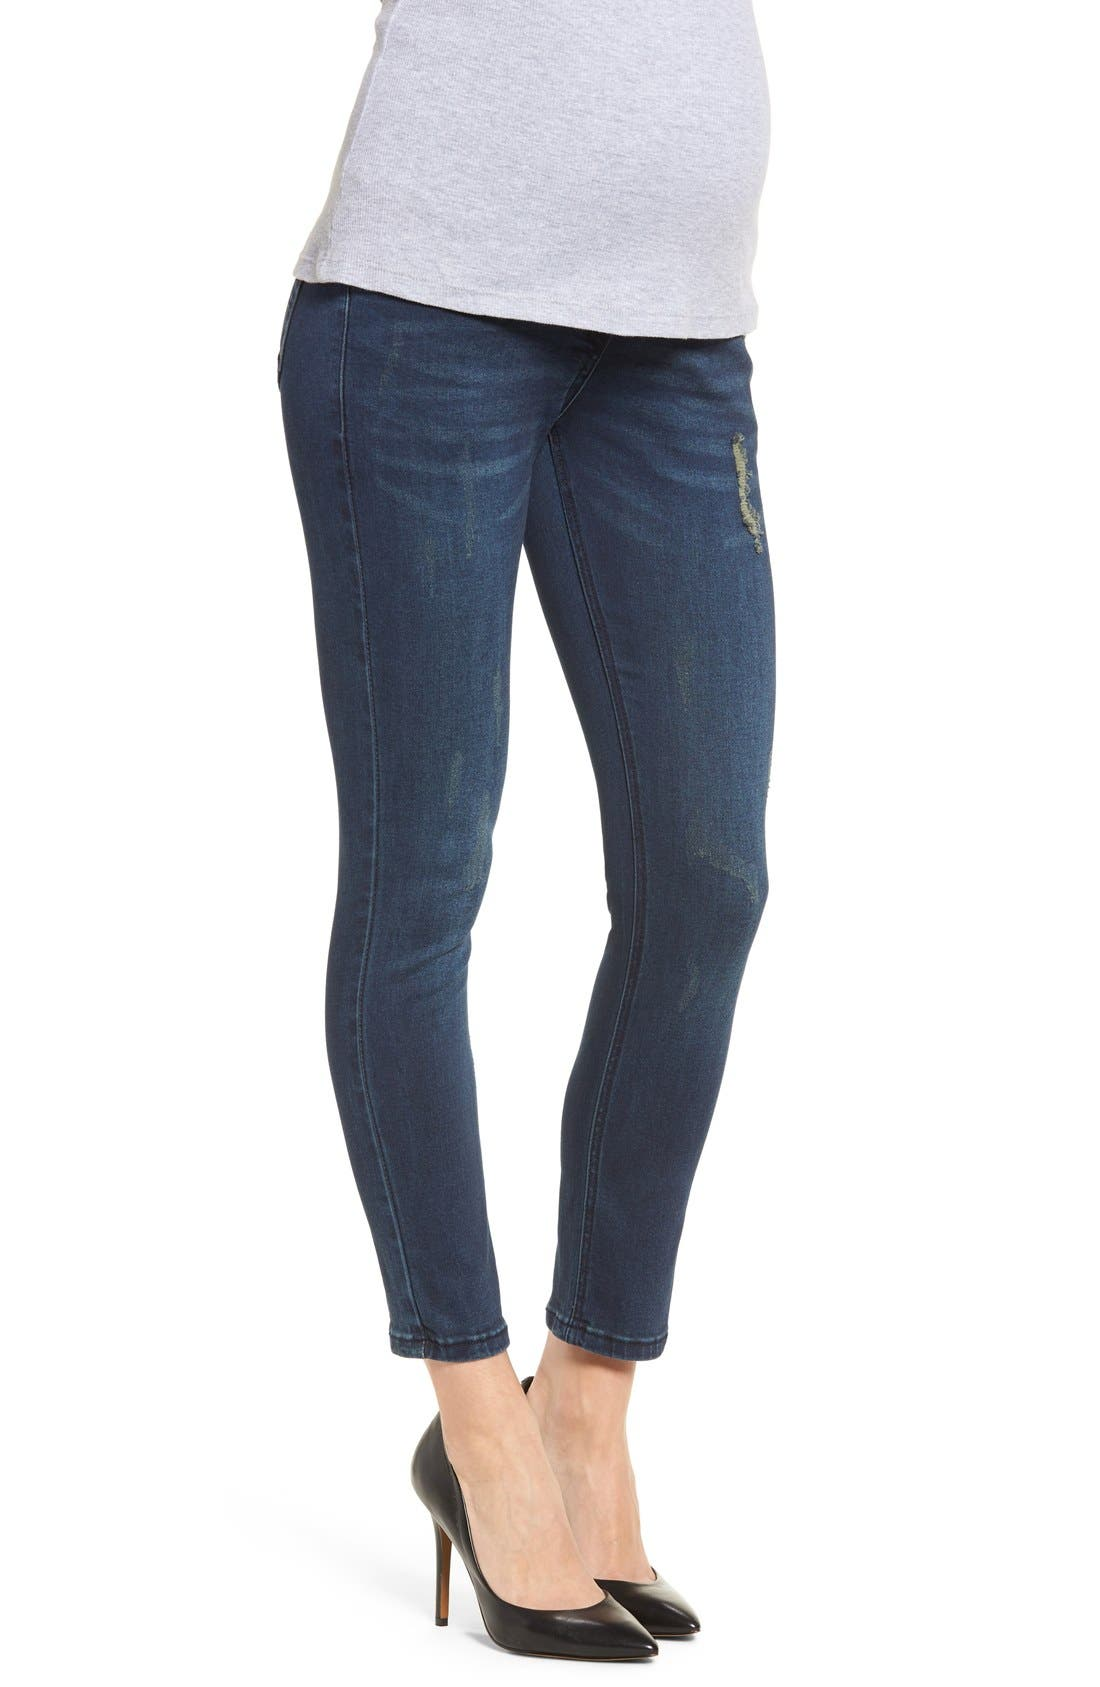 Distressed Skinny Maternity Jeans,                             Alternate thumbnail 3, color,                             400